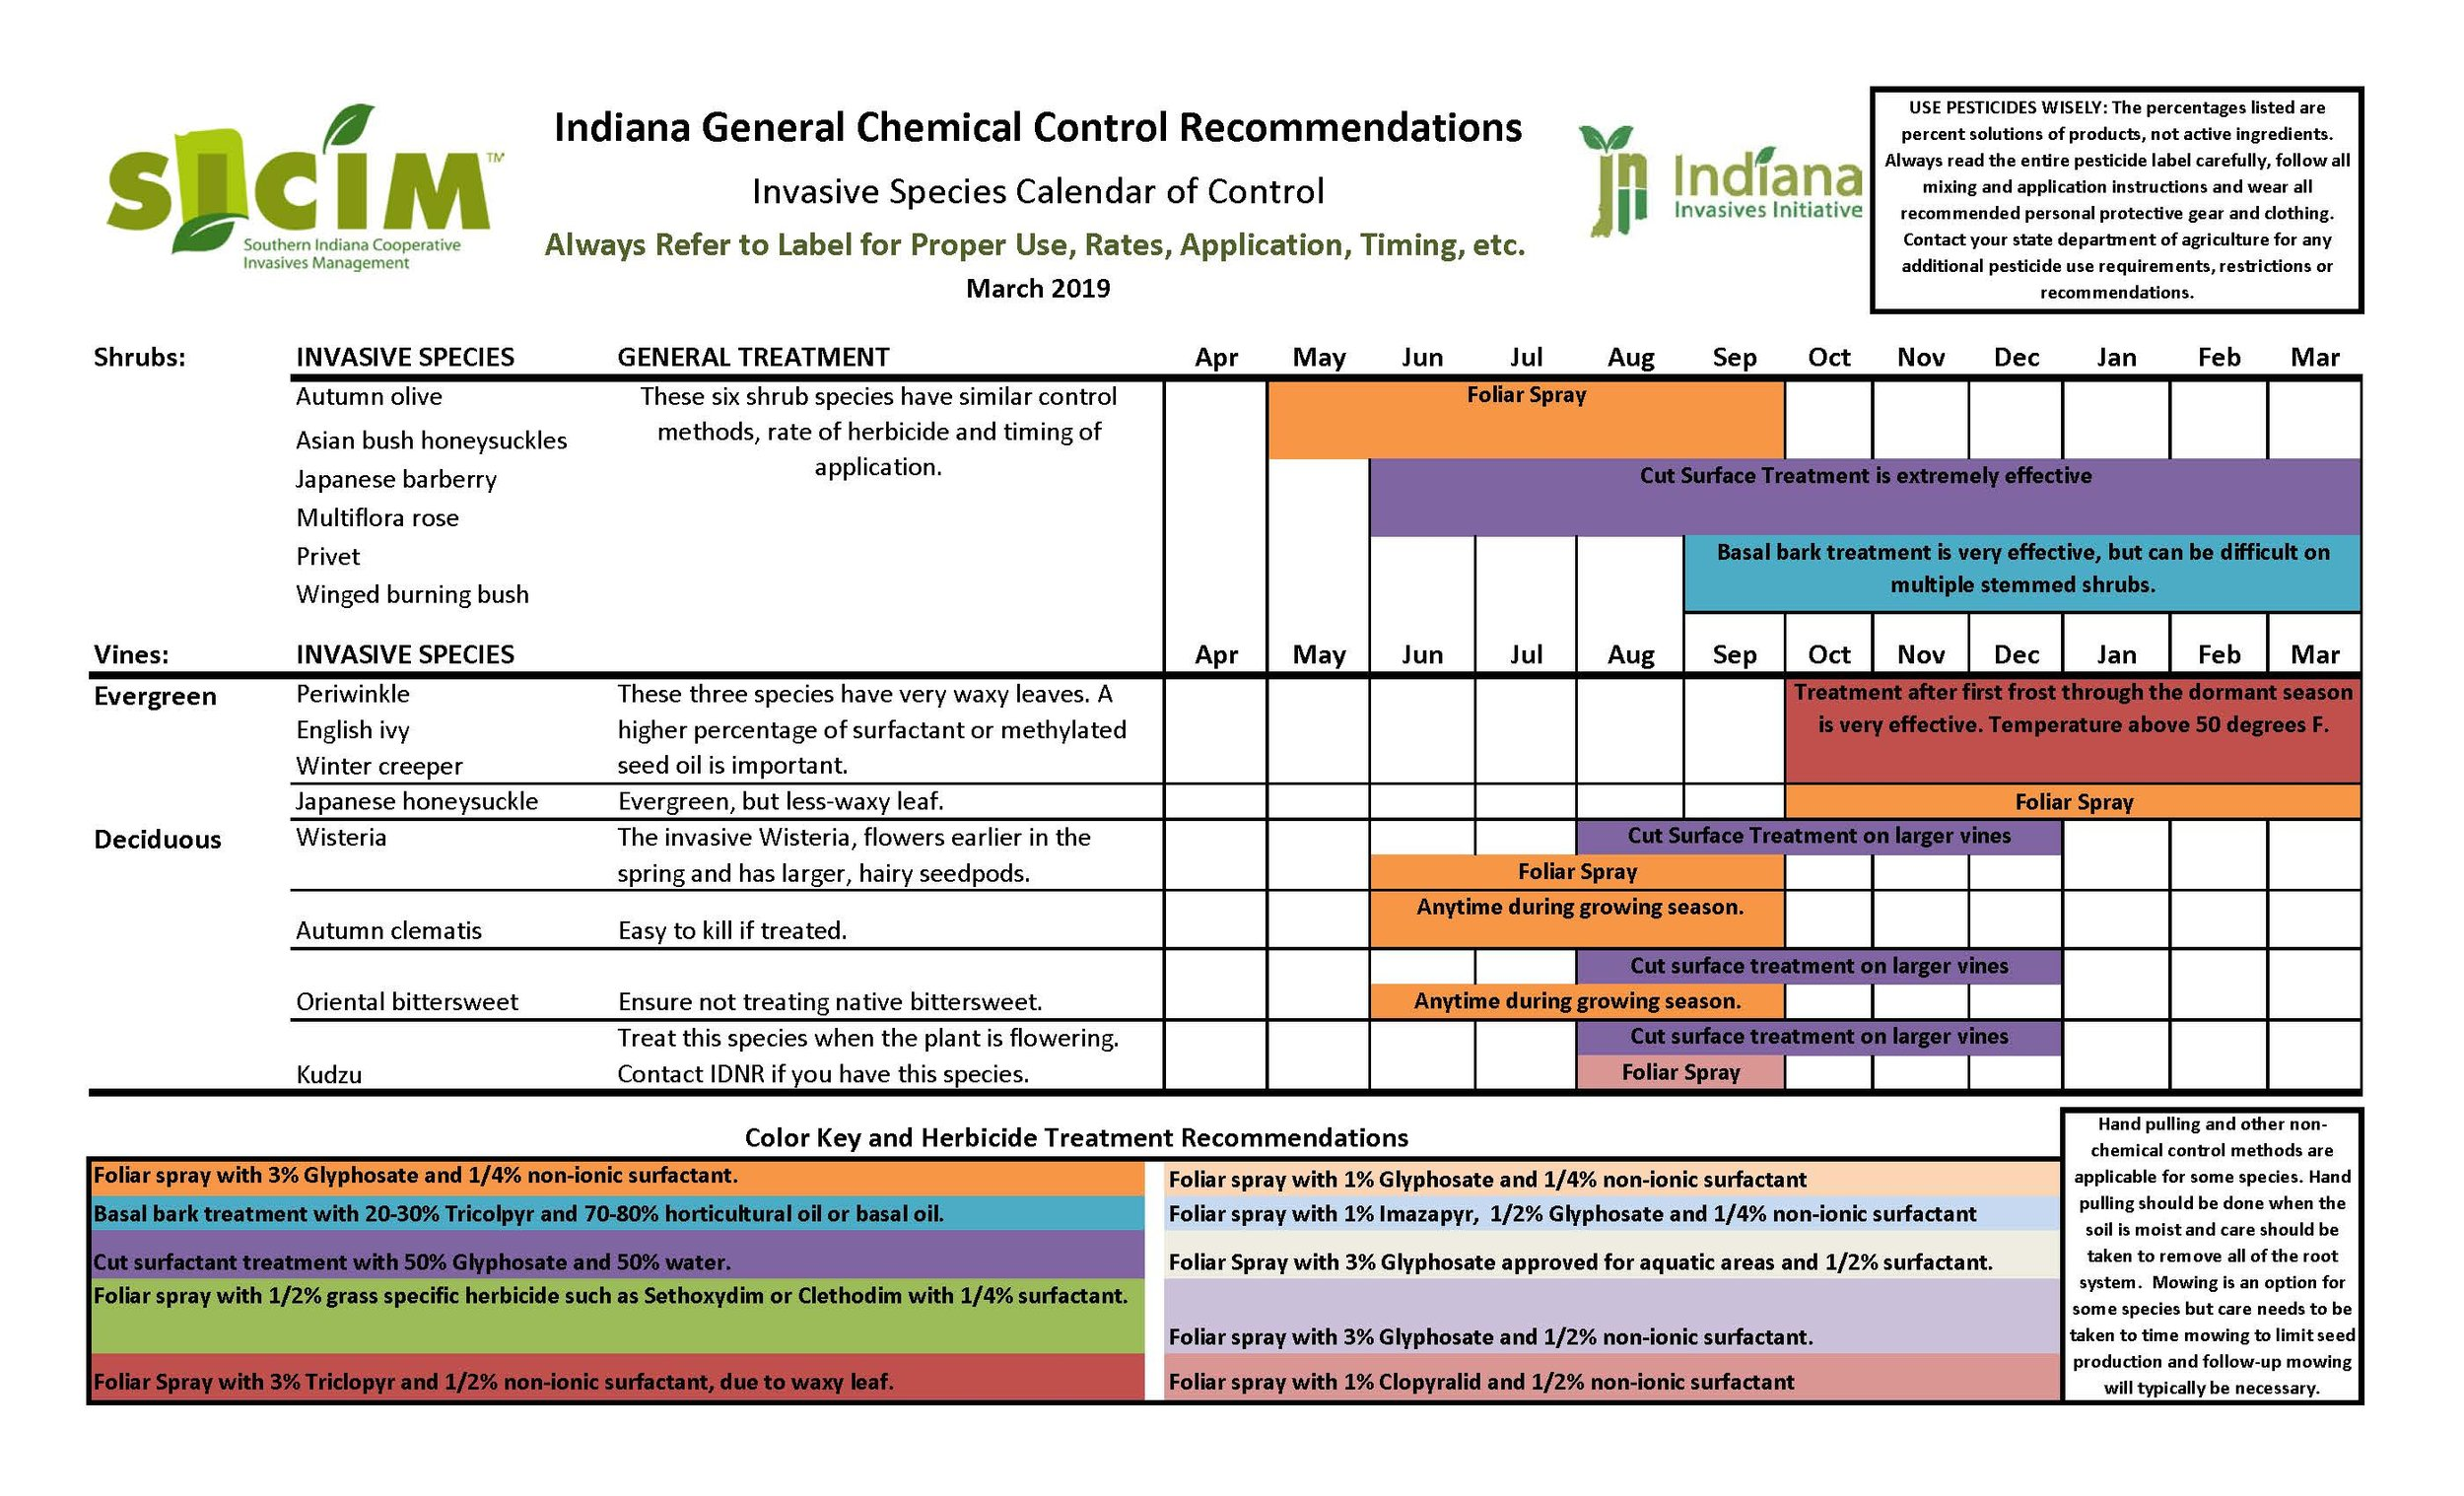 Invasive species control calendar